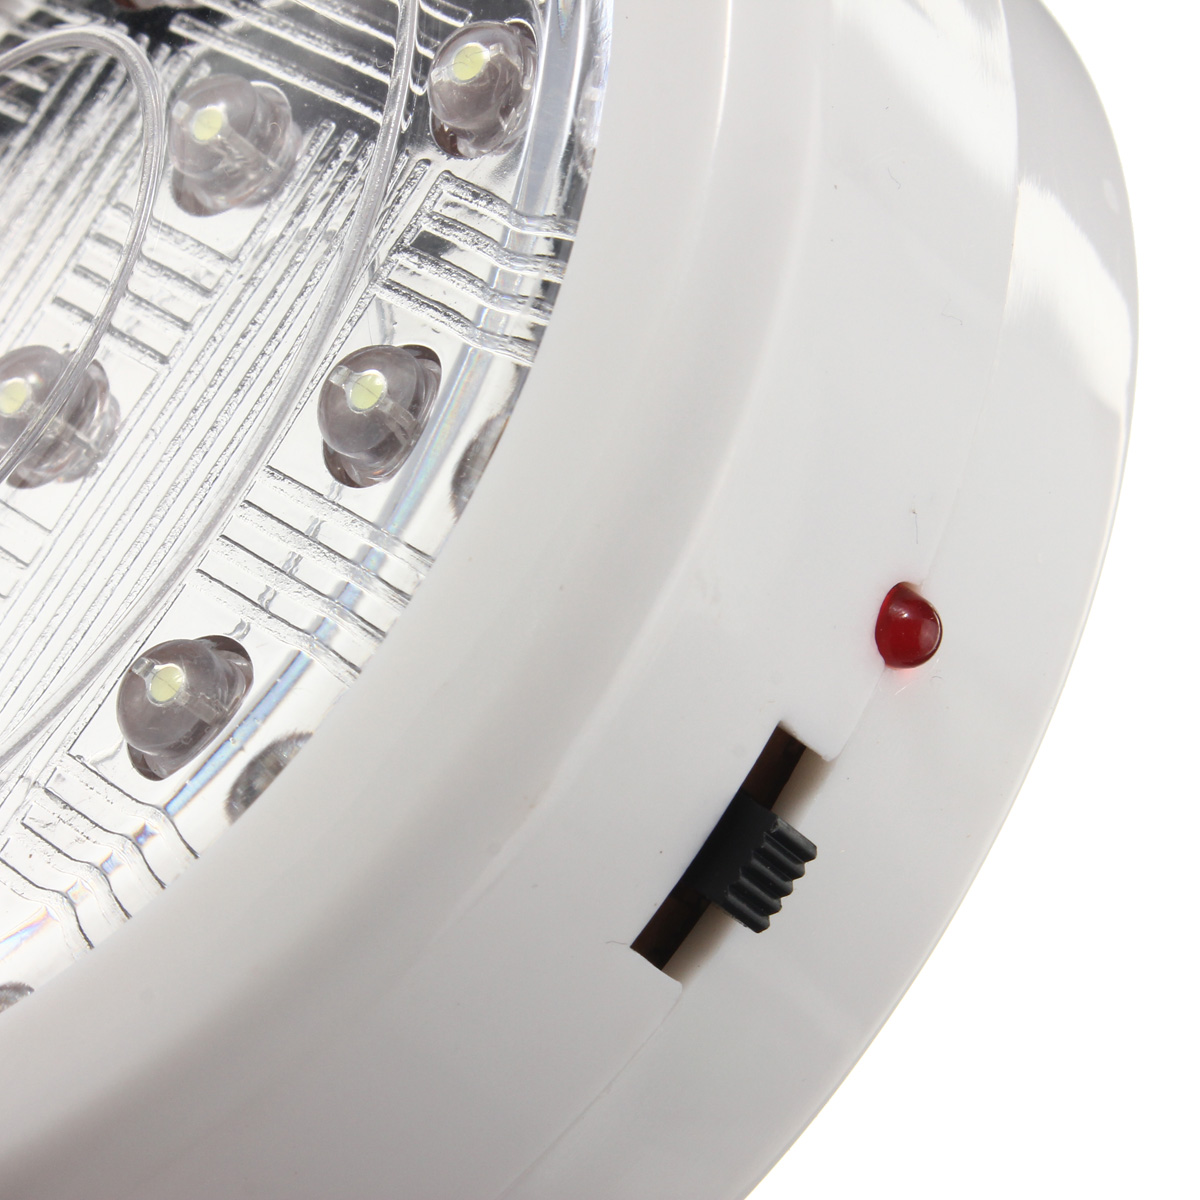 2w 13 Led Rechargeable Emergency Light Automatic Power Failure Outage Lighting Lamp Bulb Ac110-240v Lights & Lighting